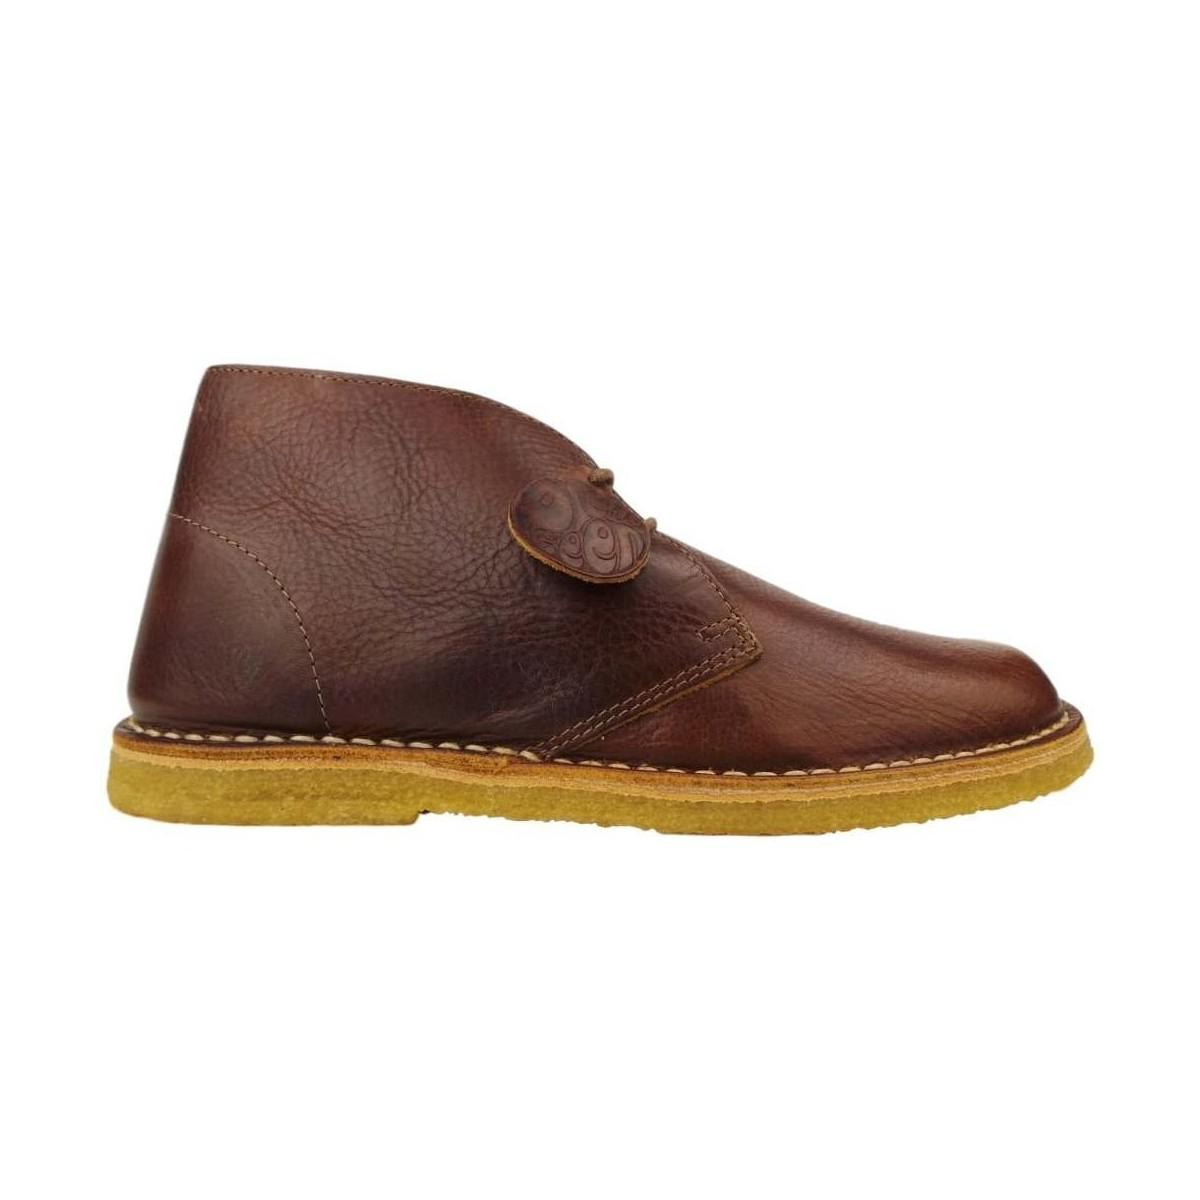 844d6fdda4b9 Gallery. Previously sold at  Spartoo · Men s Ugg Freemon Men s Suede Boots  Men s ...